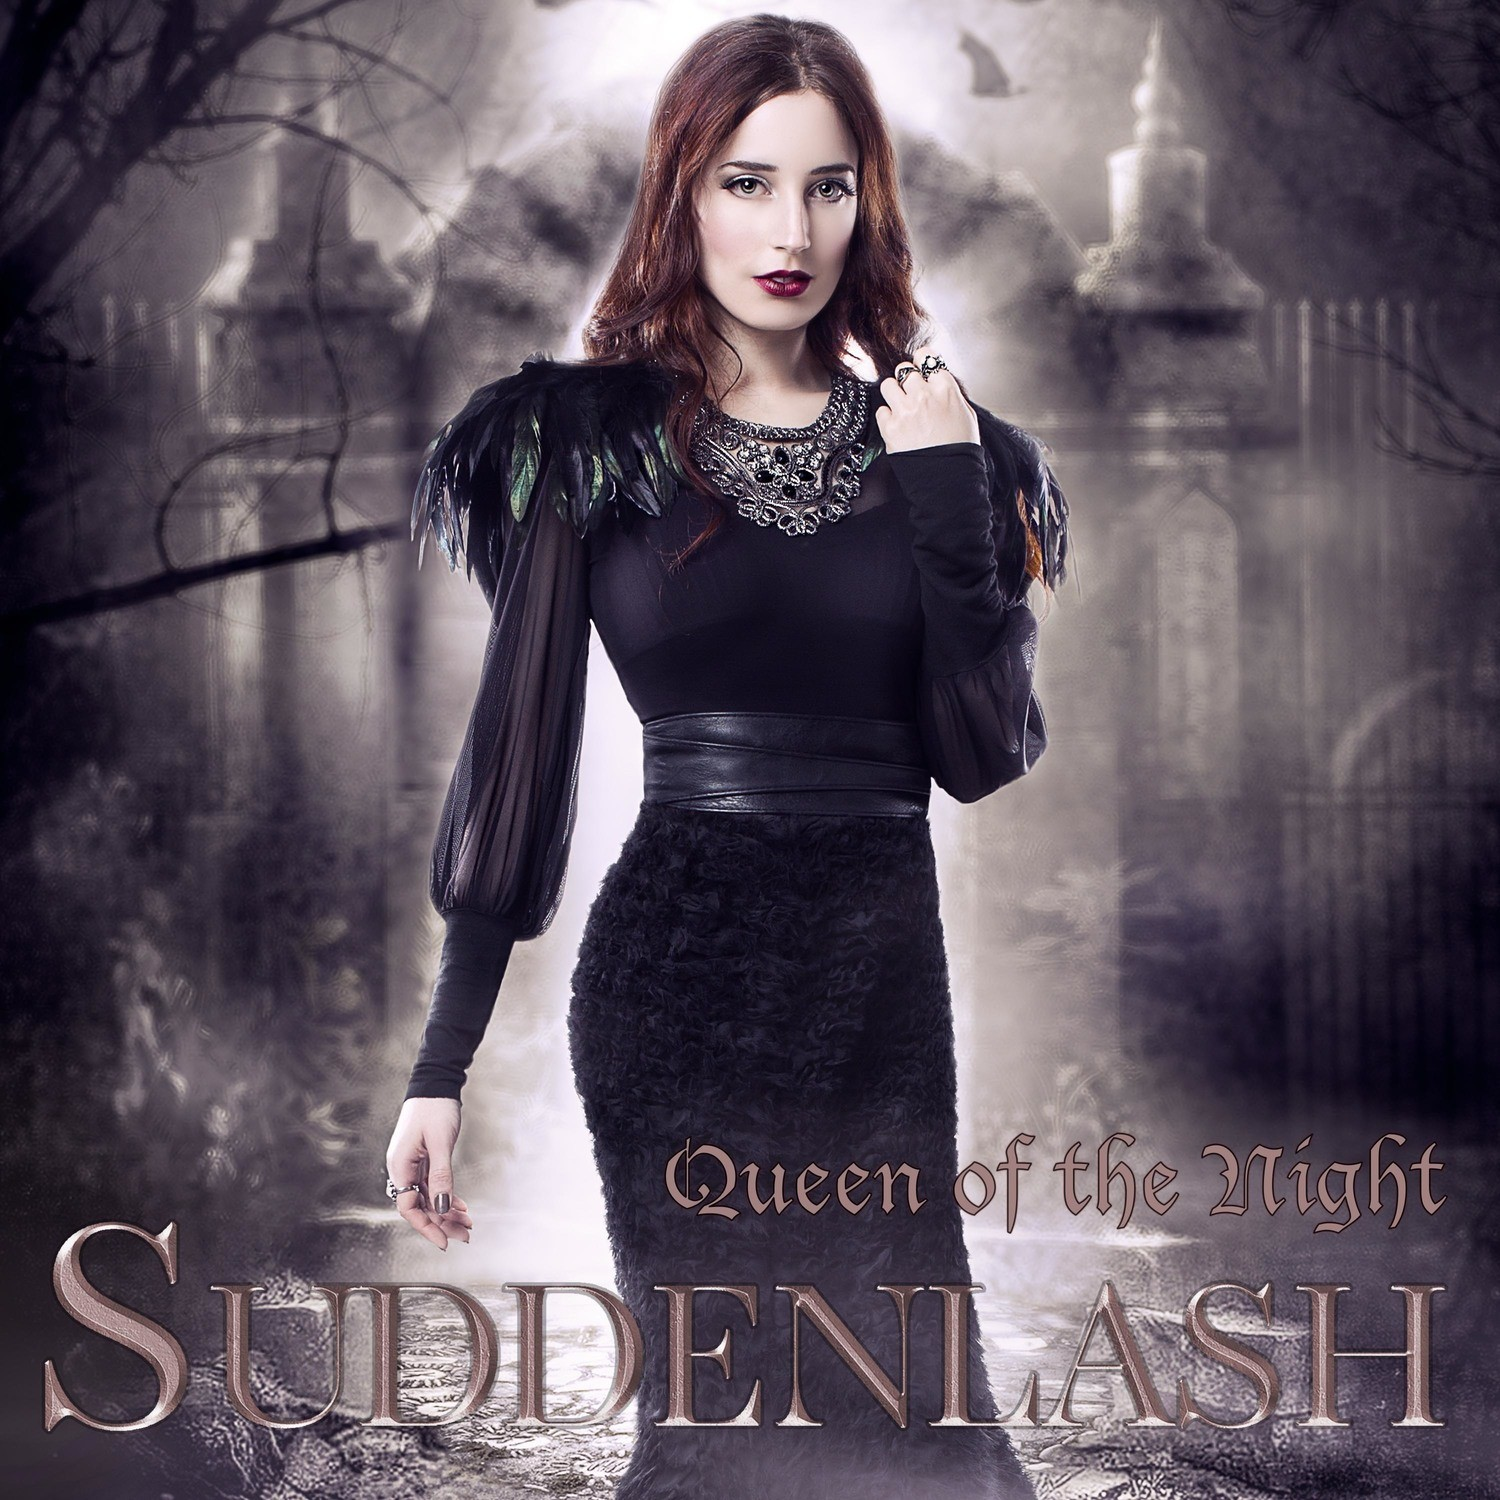 Queen of the Night - Single (2016) - MP3 Digital Download